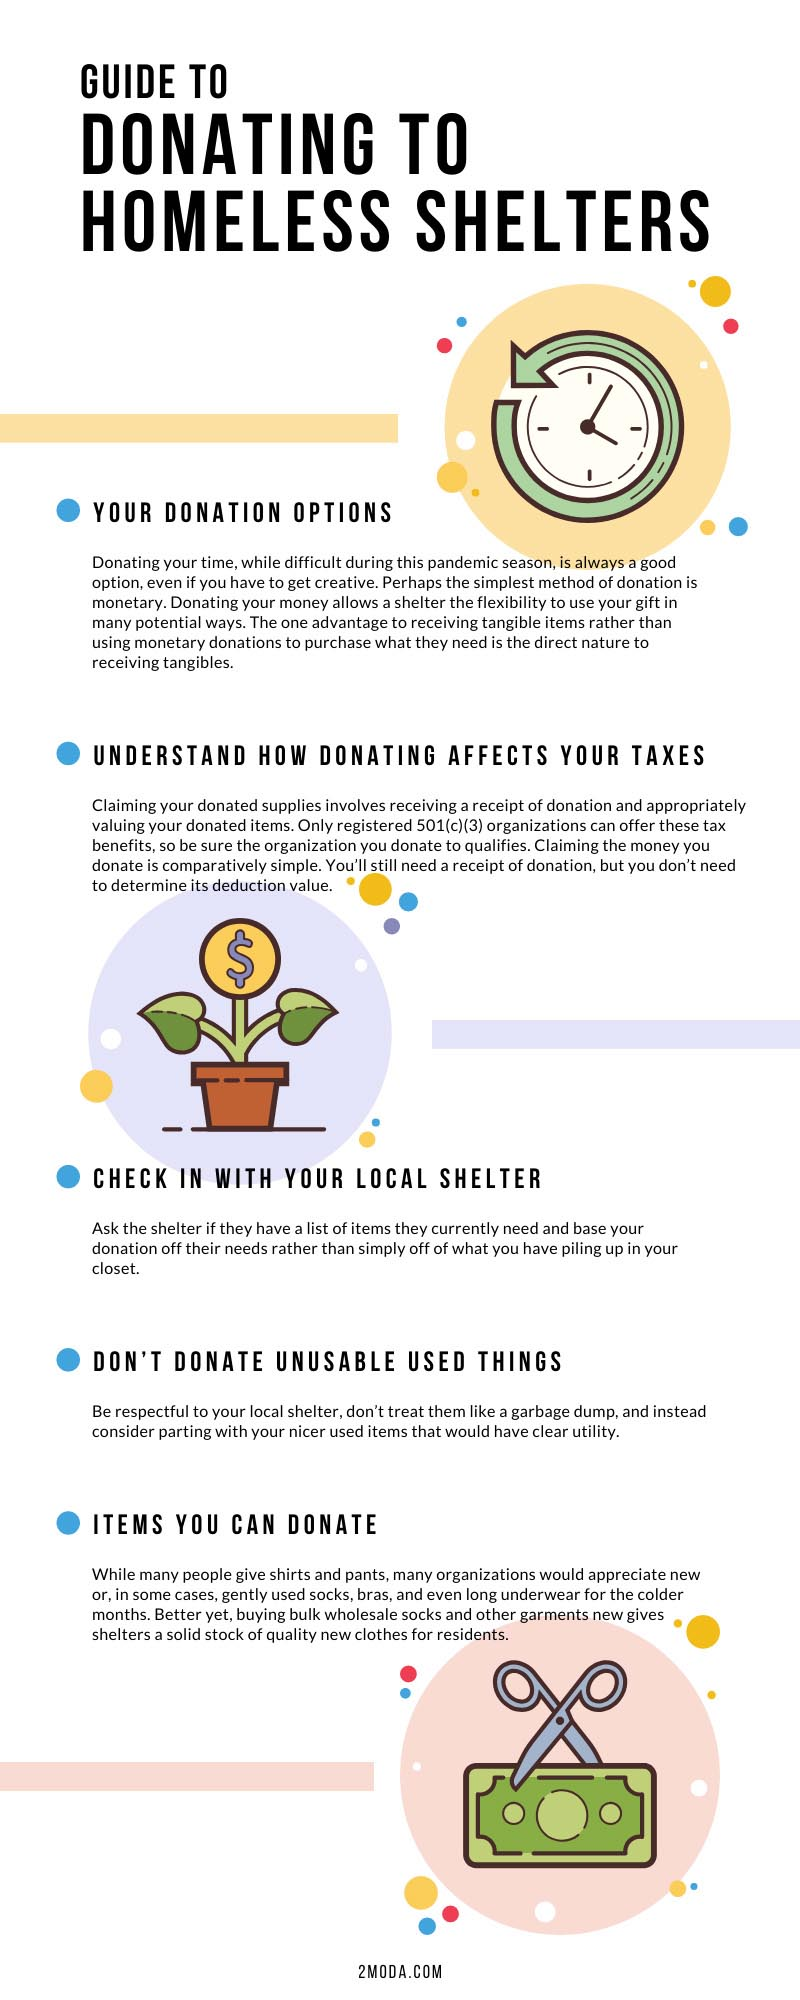 Guide to Donating to Homeless Shelters